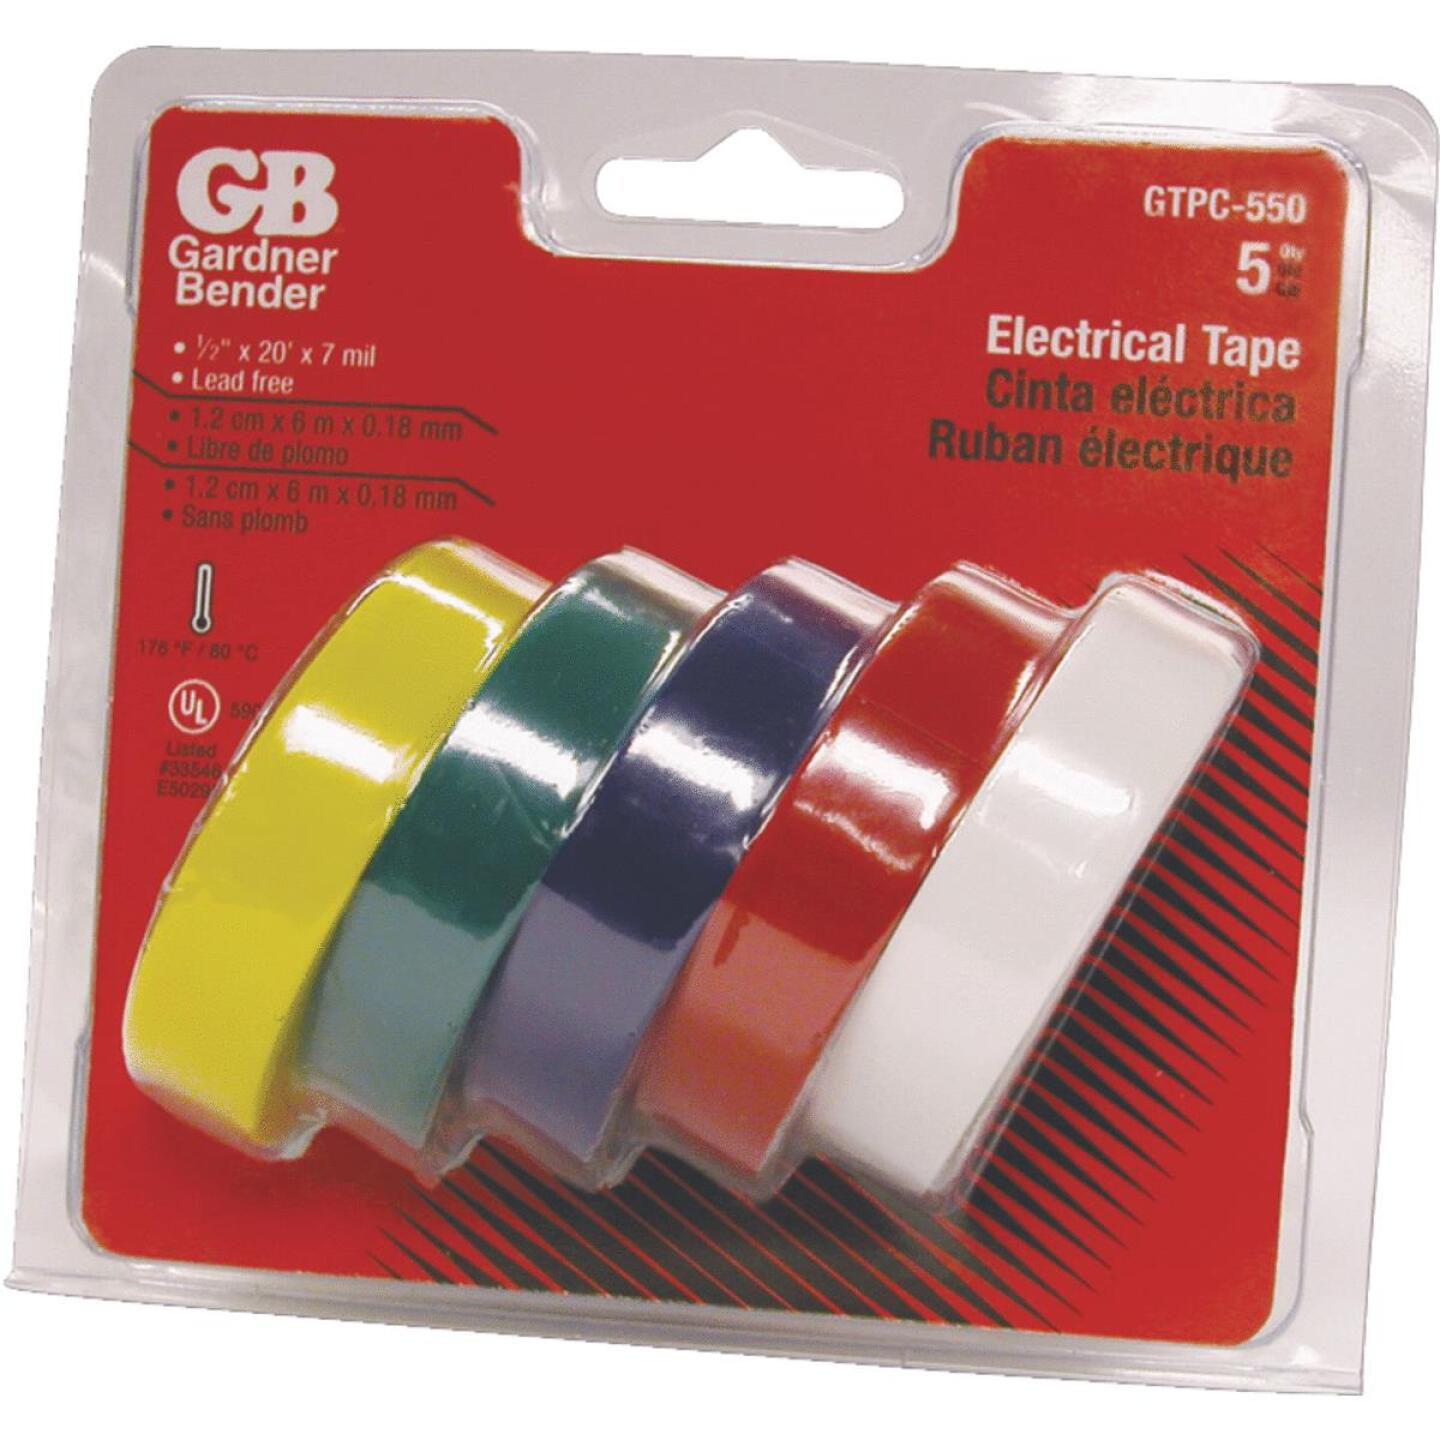 Gardner Bender General Purpose 1/2 In. x 20 Ft. Electrical Tape Image 1